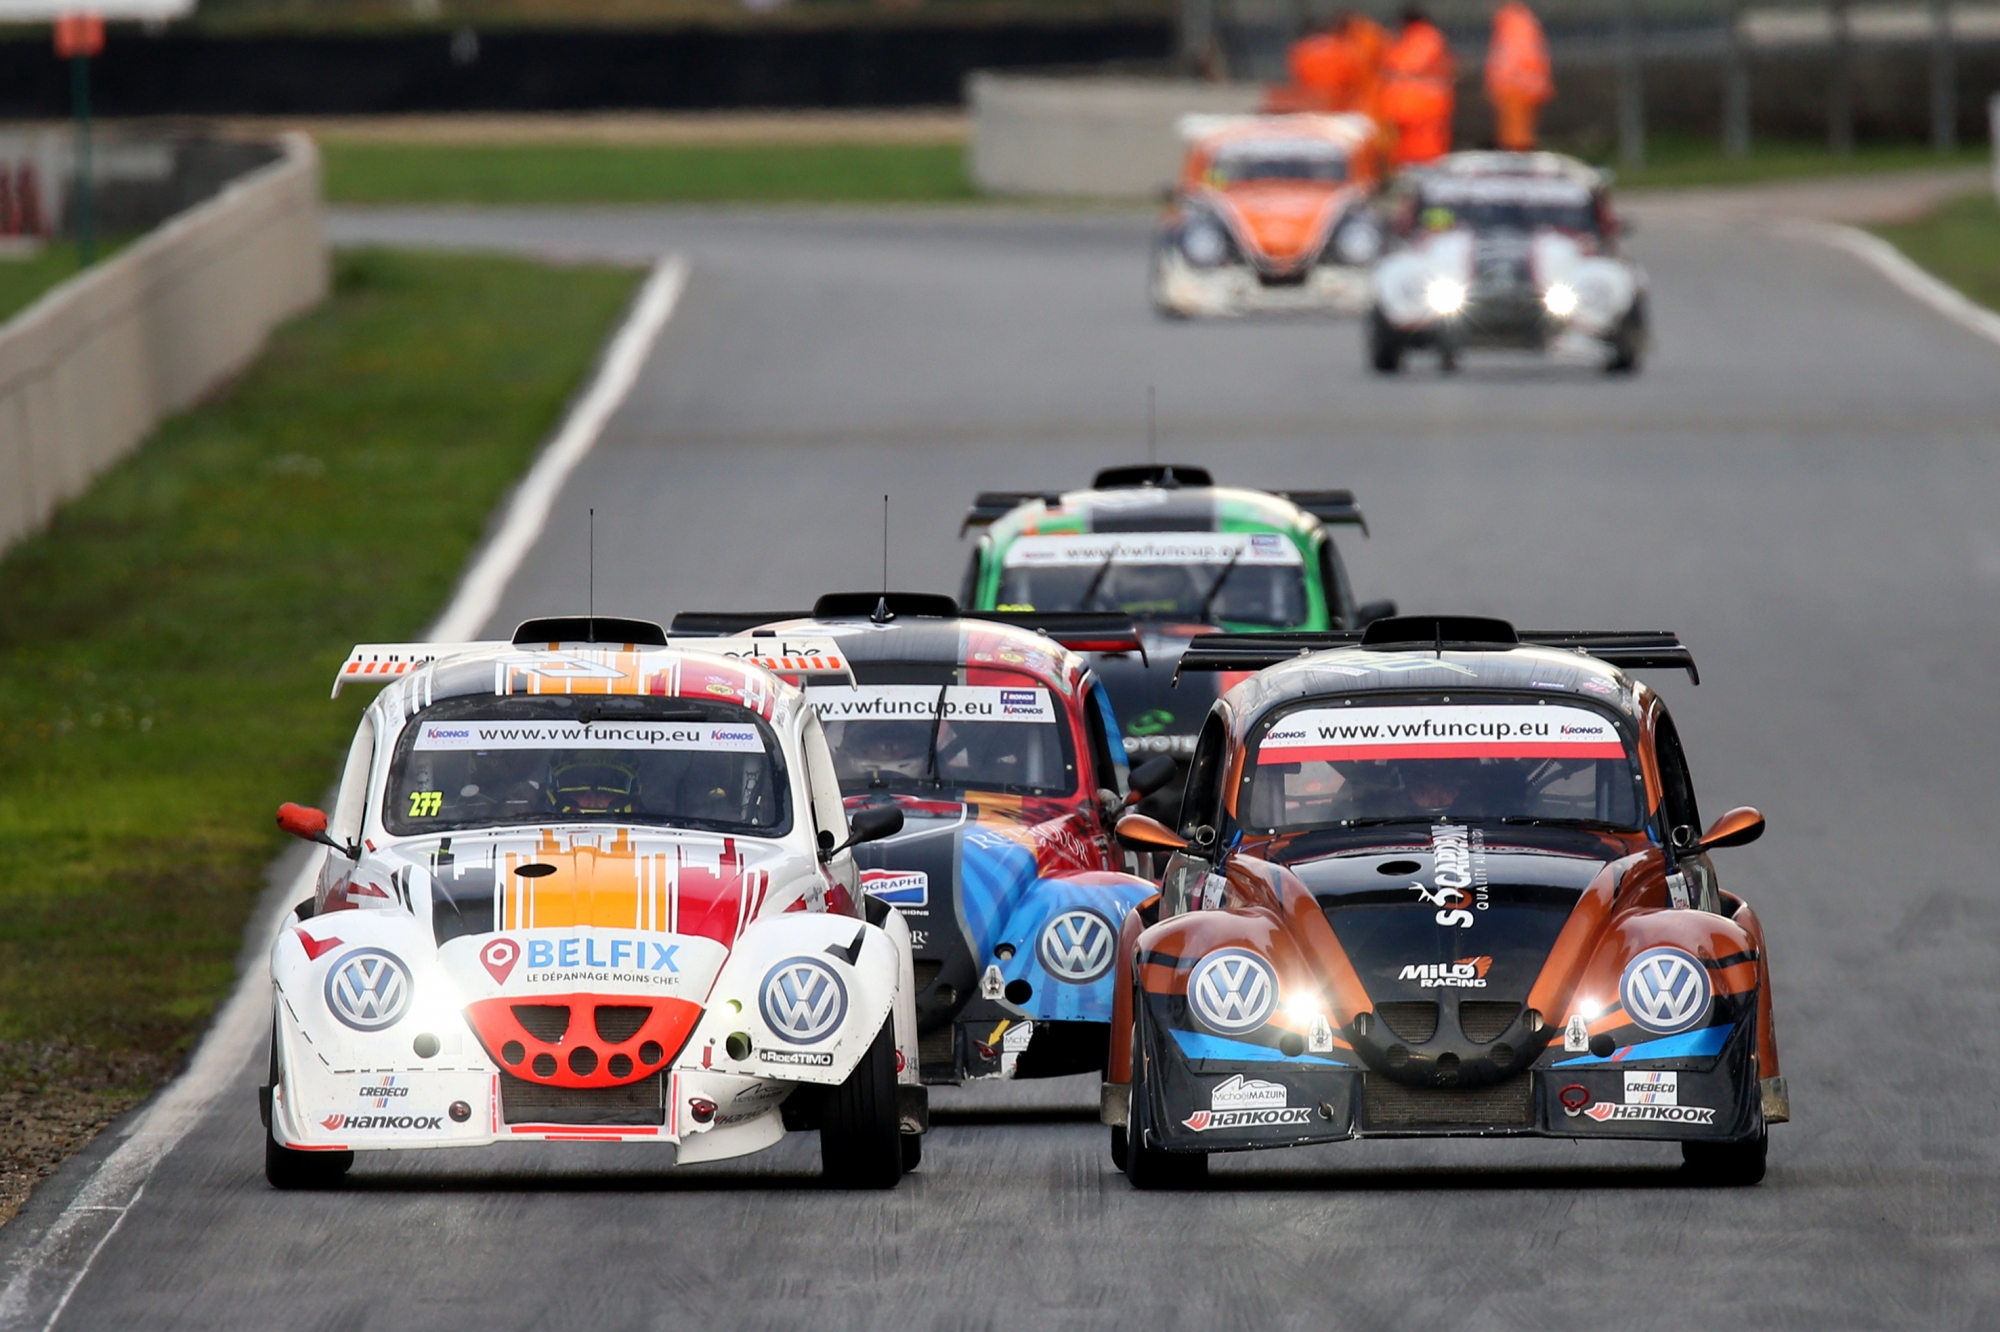 image 1 - Un format spectaculaire pour la VW e-Fun Cup powered by Hankook